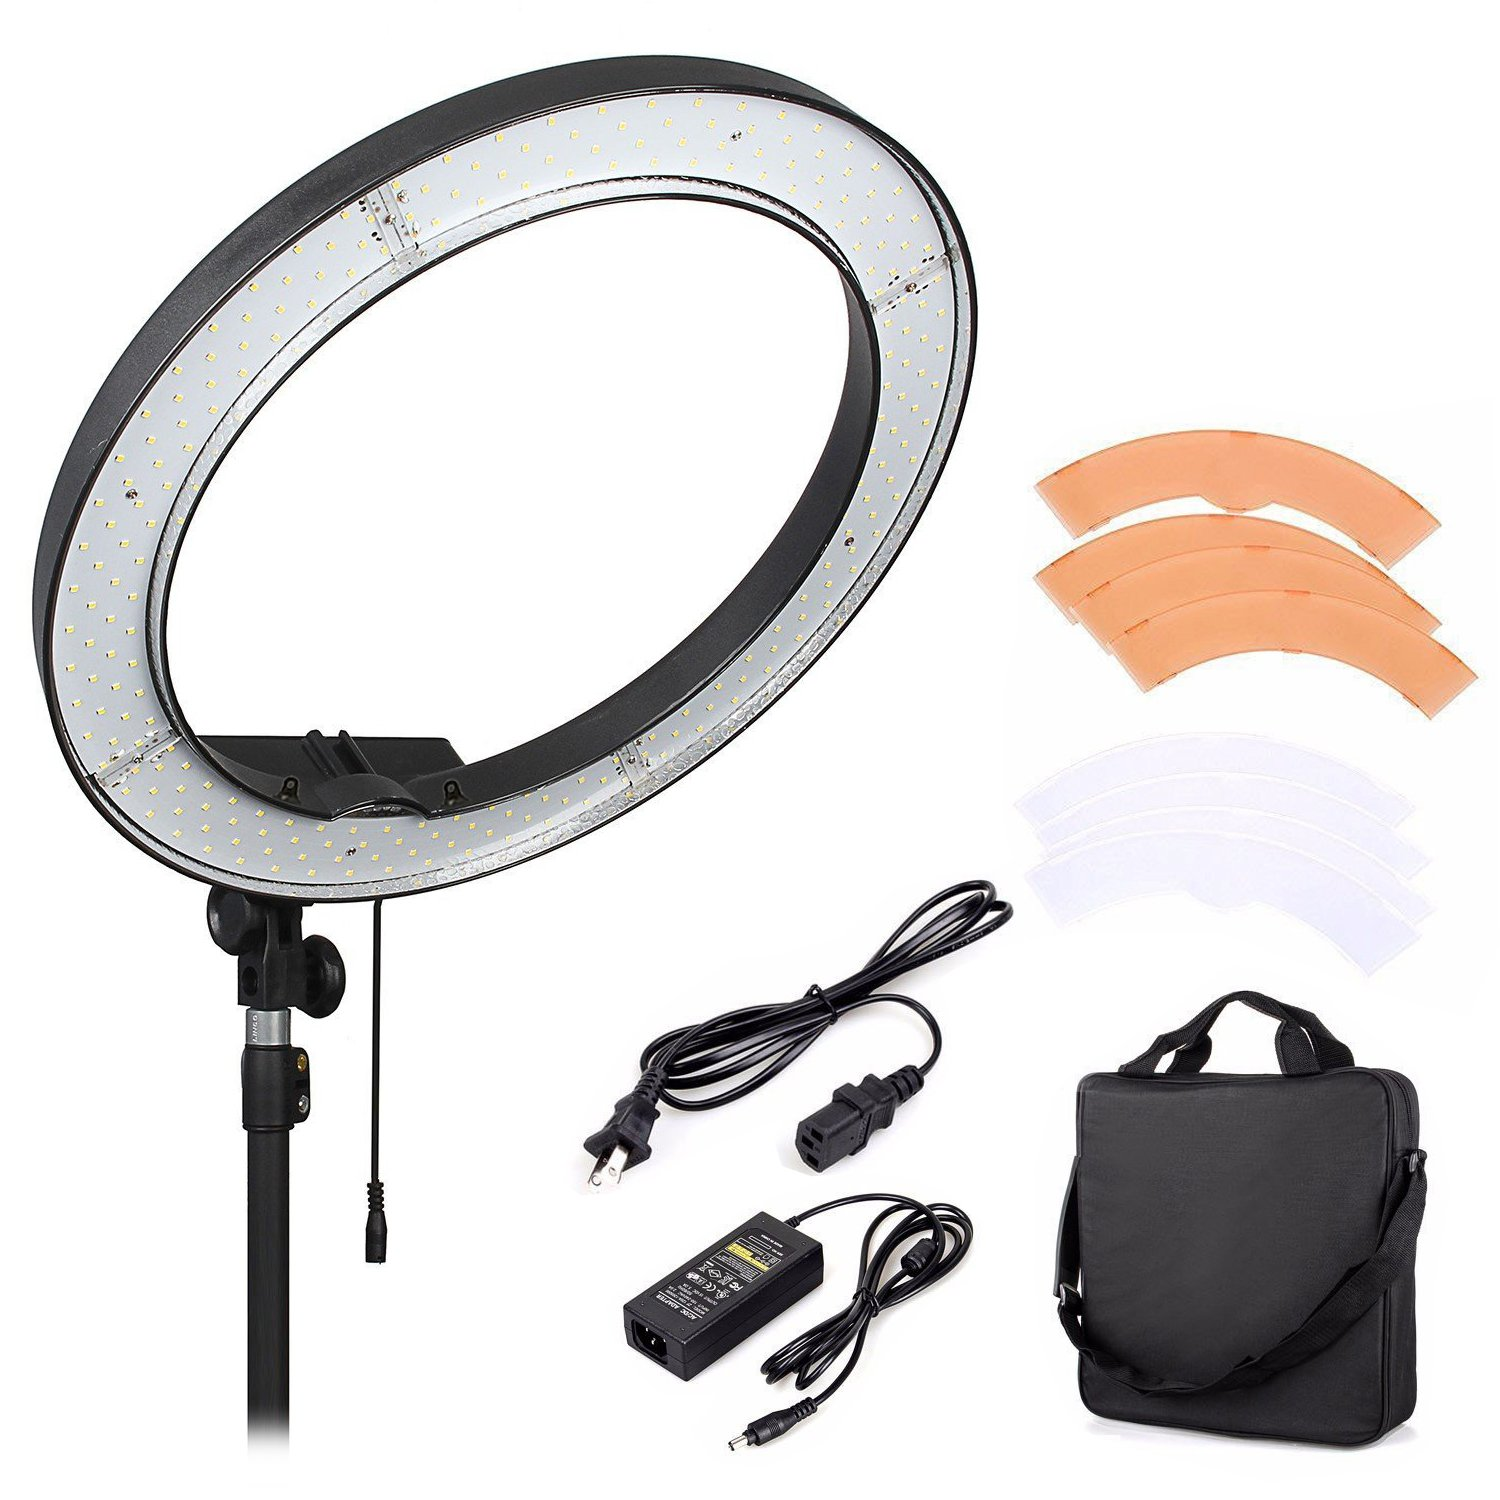 "Mcoplus RL-18 Camera Photo/Video 18"" 5500K LED Dimmable Ring Flash Light Studio Outdoor Video Camera Photography Lighting"